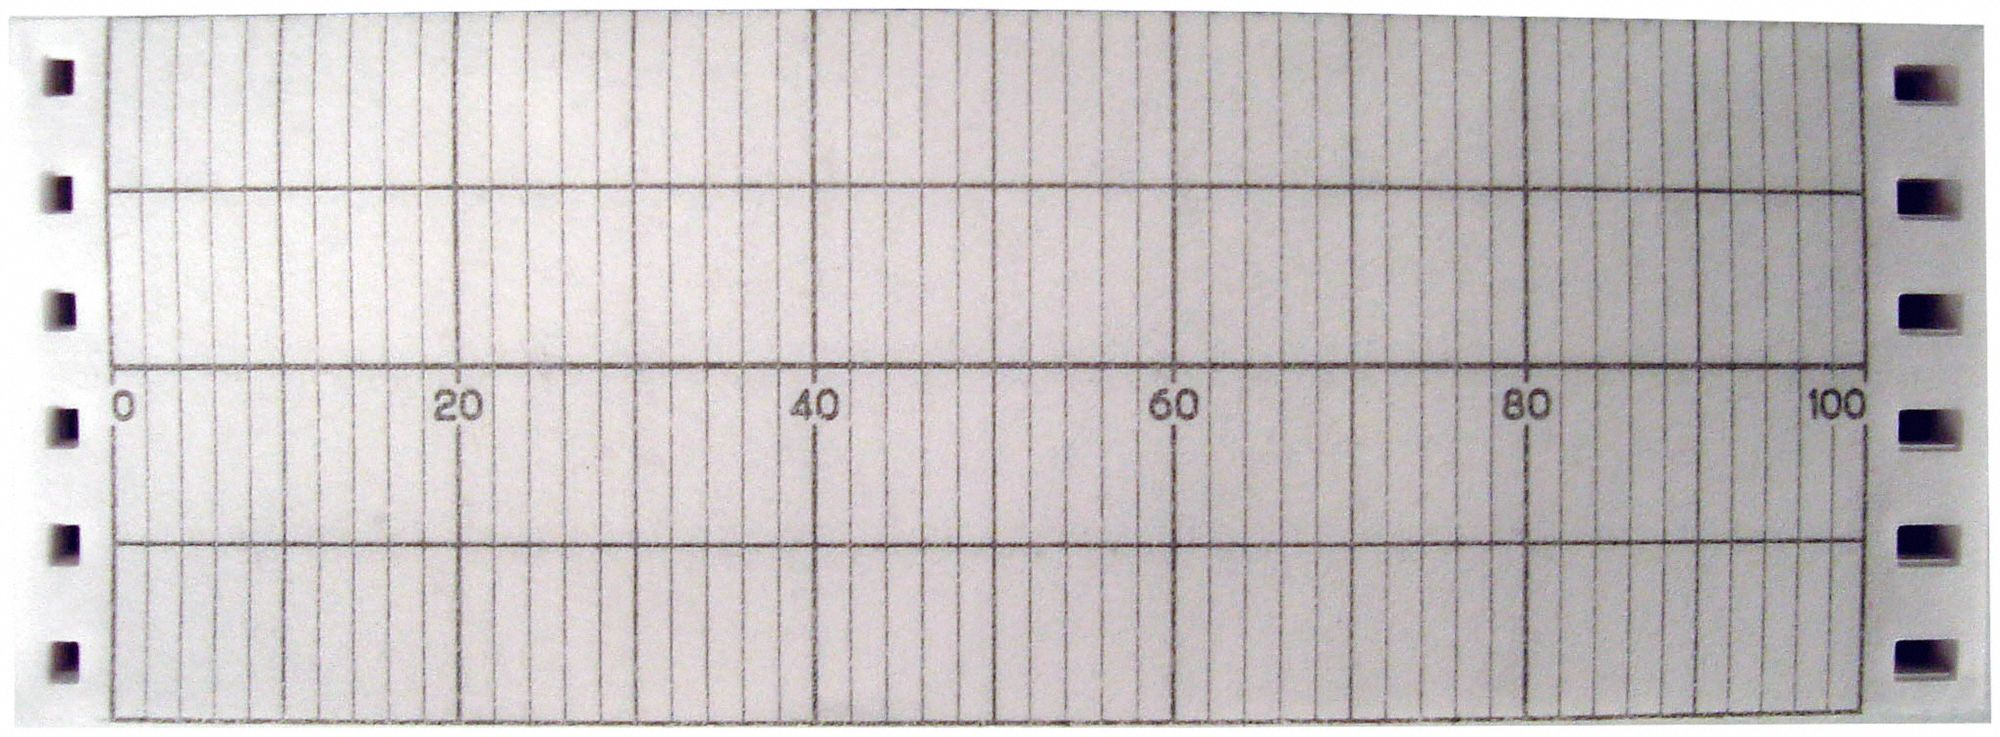 Strip Chart, Fanfold, Range 0 to 100, 53 Ft